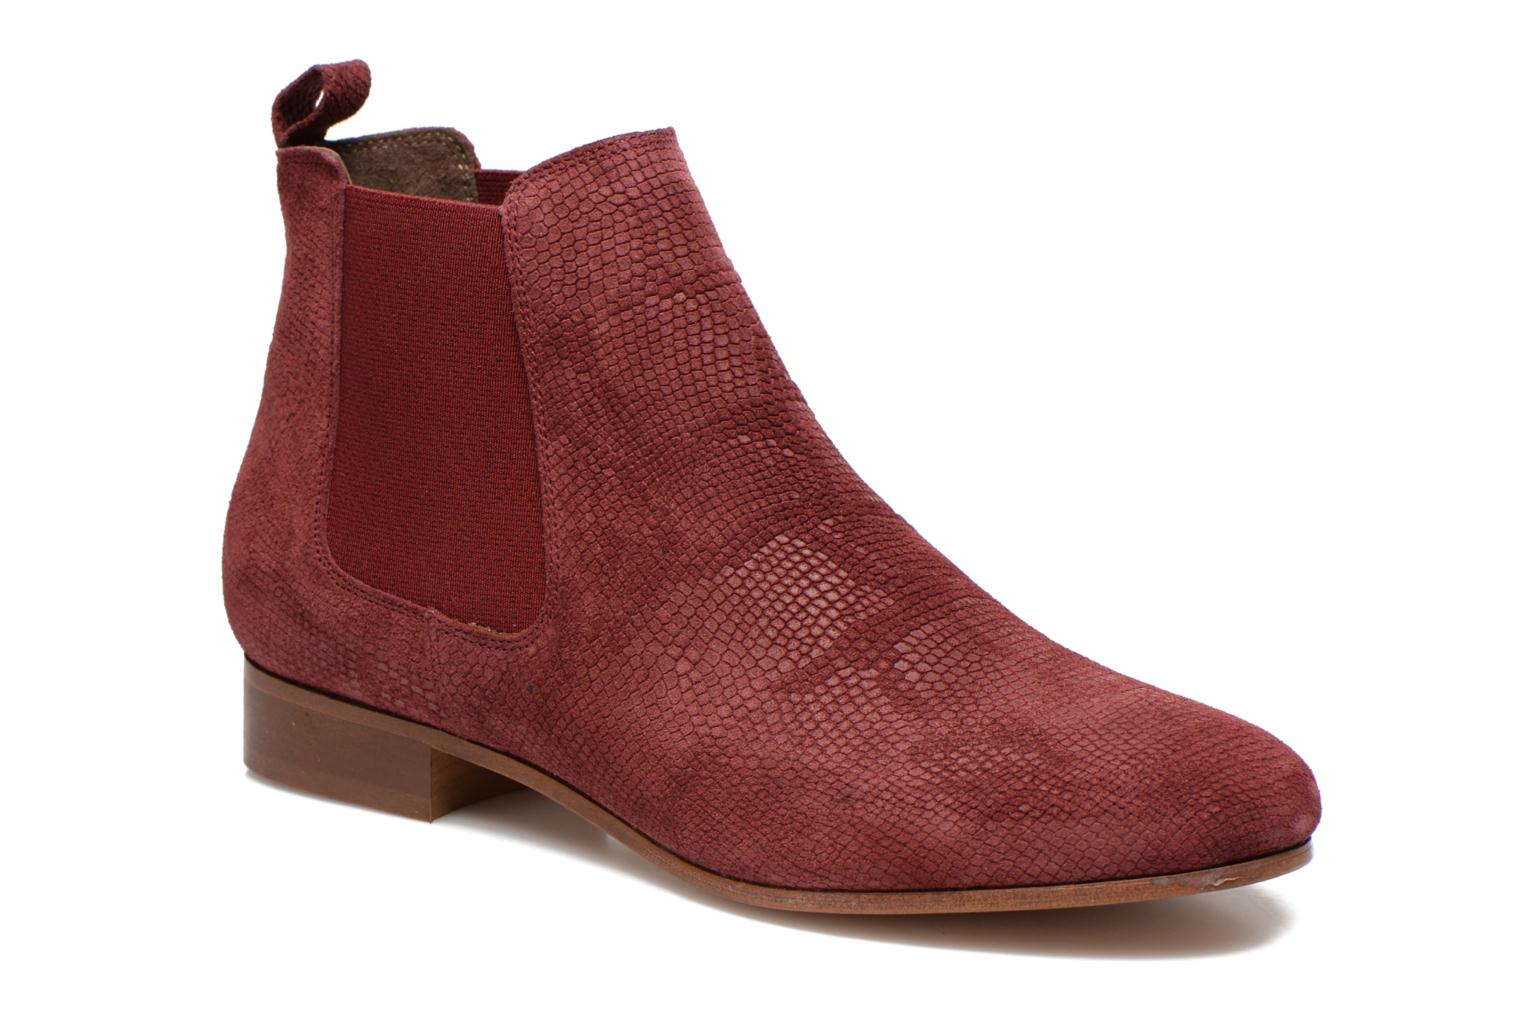 Chelsea Boots by BensimonRebajas - 10%